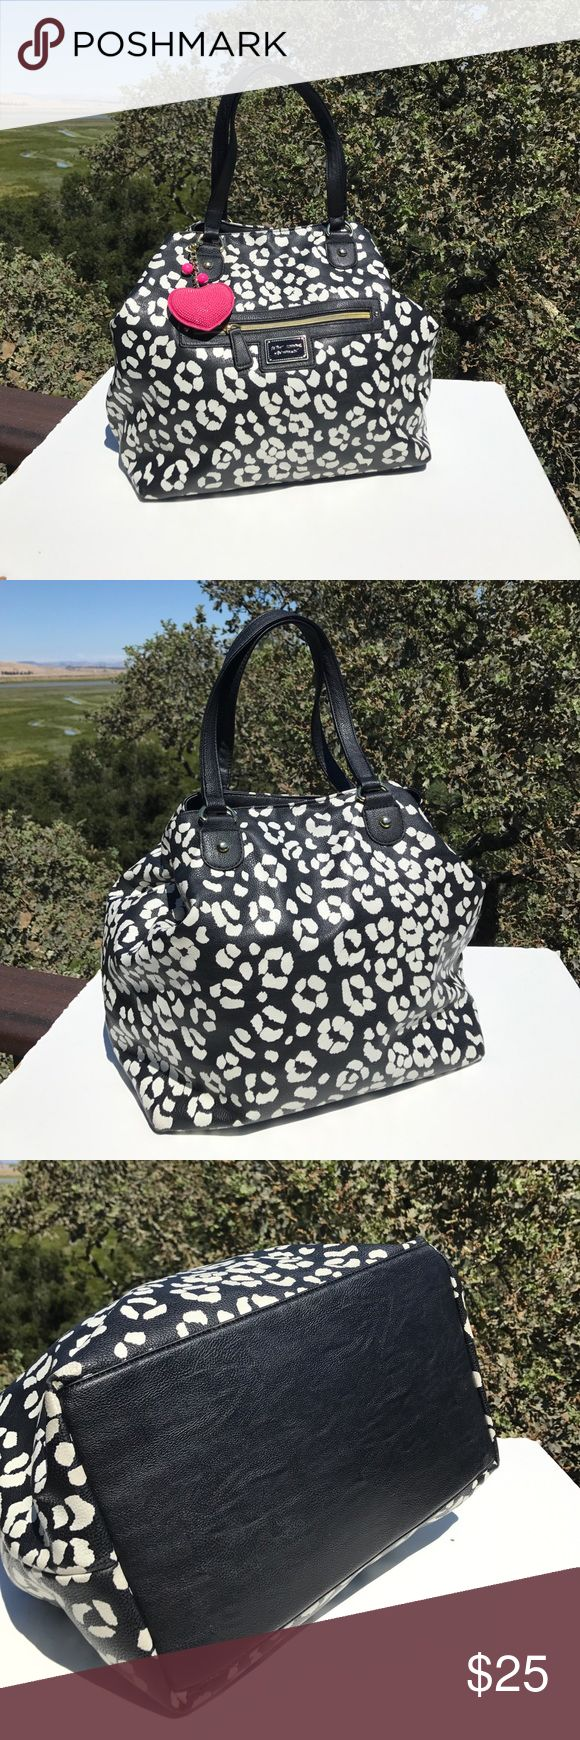 "Betsey Johnson Black White Leopard Tote 18"" long, 13"" tall, 8"" wide.  Tiny wear to bottom corners.  Light interior use. Betsey Johnson Bags Totes"